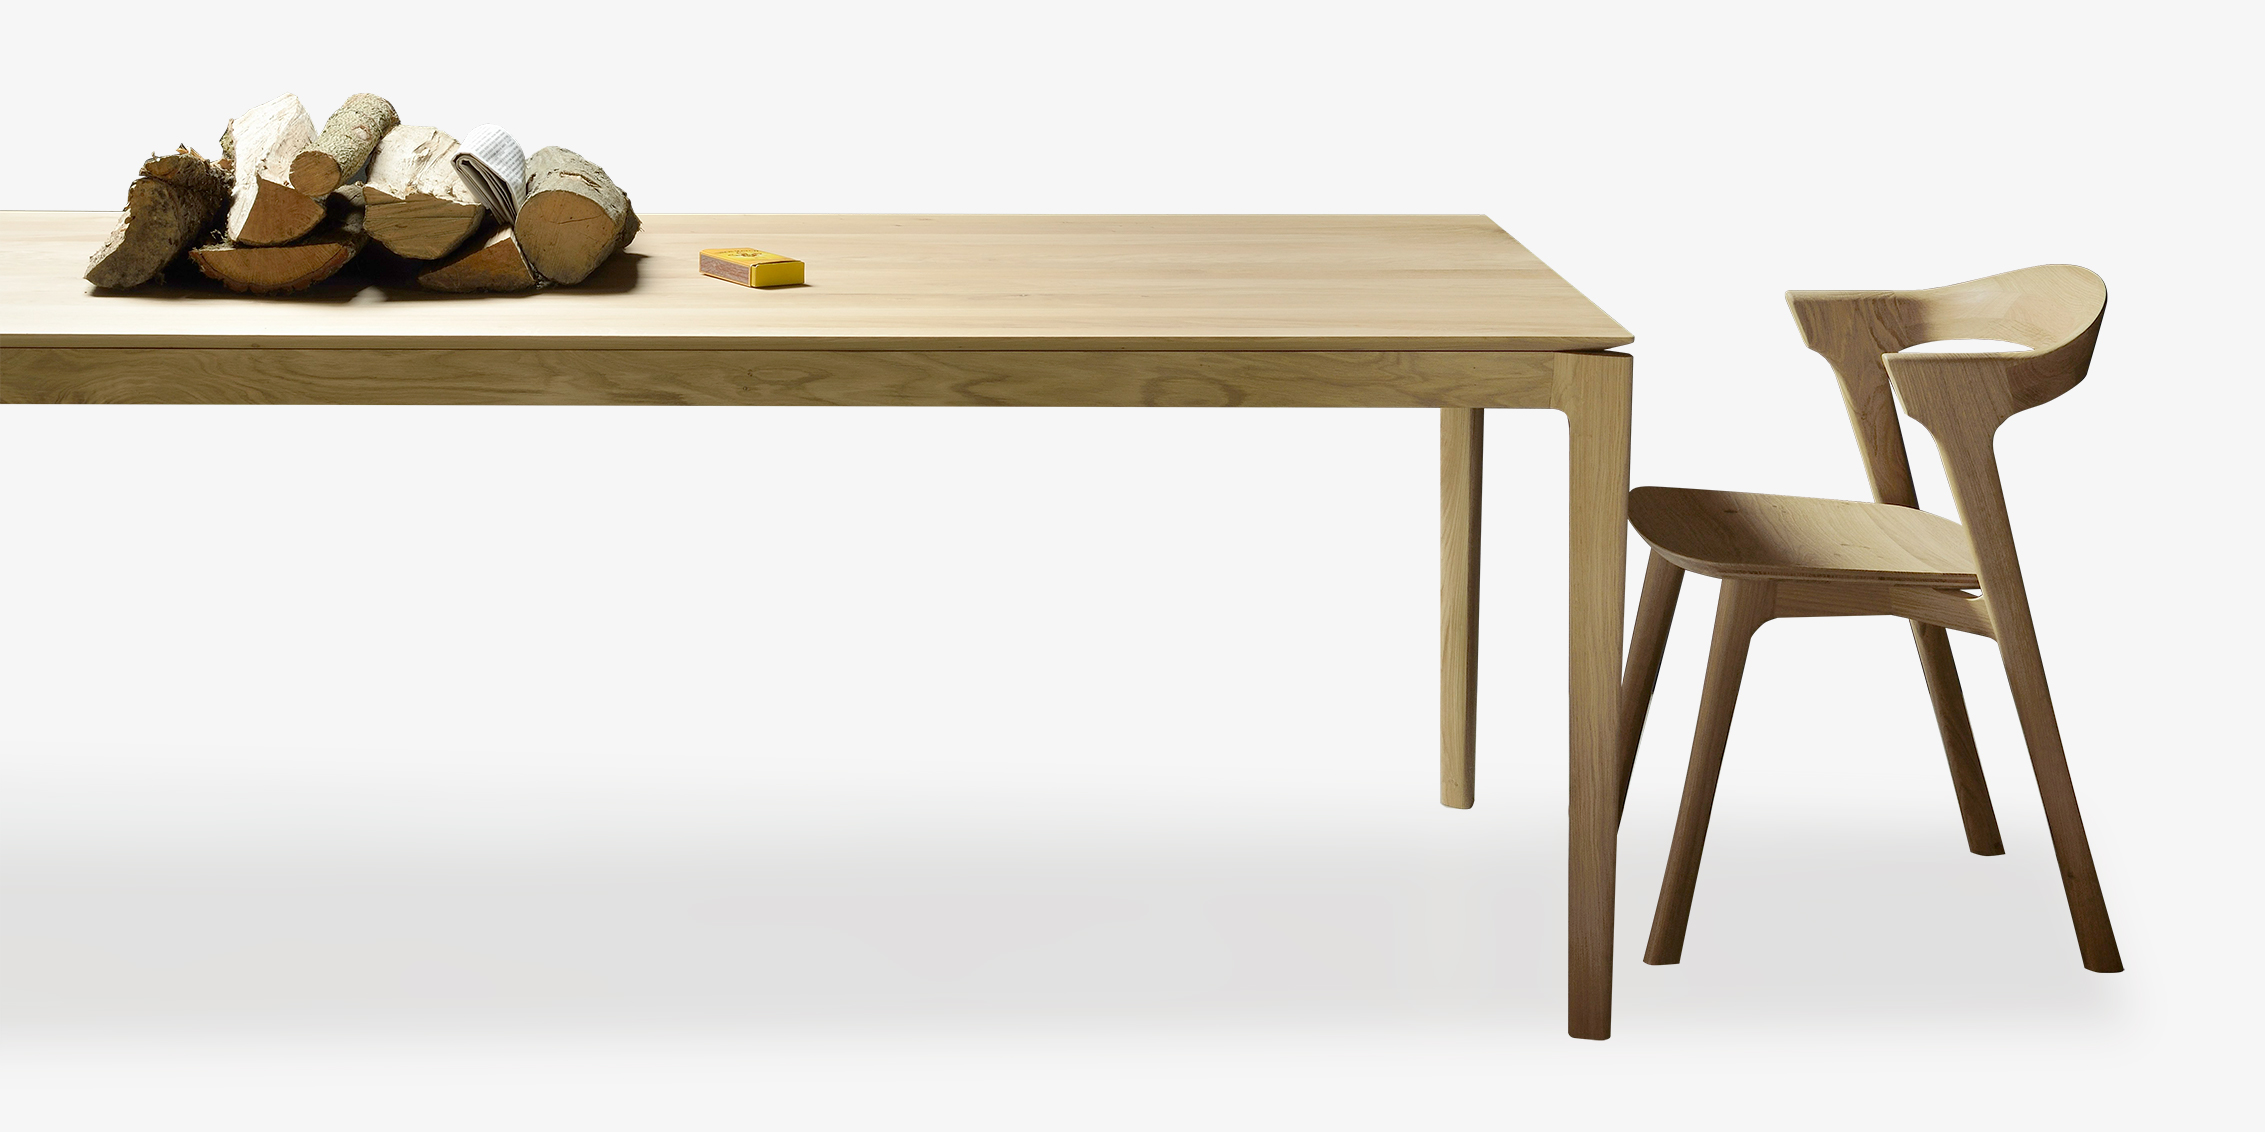 Six Sense Ieper Ethnicraft Bok Tafel Stoel Eik Six Sense : TGE 051499 Oak Bok dining table TGE 051490 Oak Bok chair 2 from sixsense.be size 2265 x 1132 jpeg 527kB